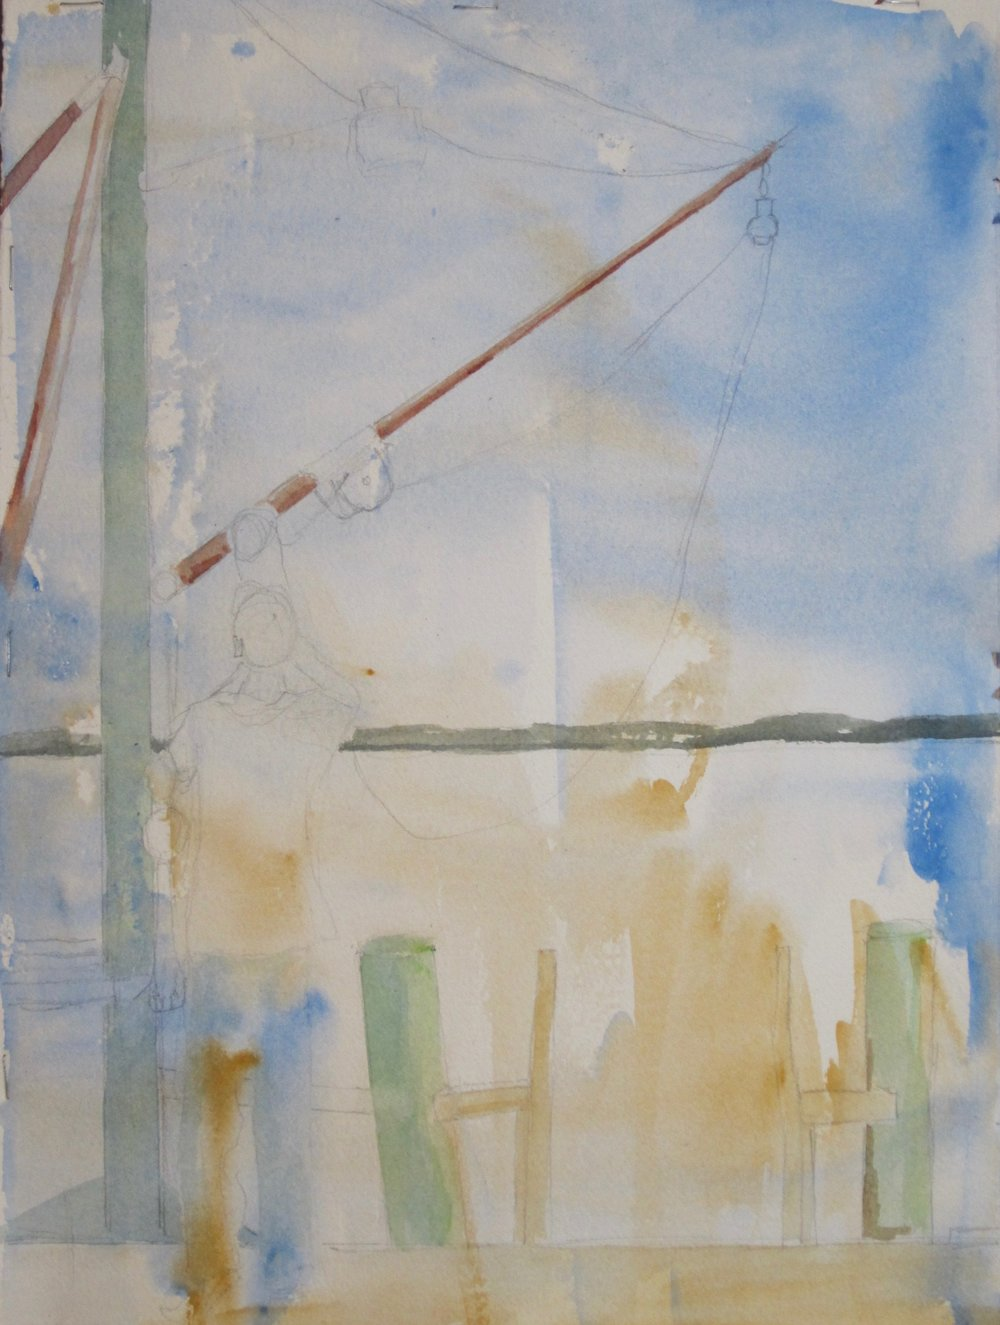 With the subject created, Livy adds supporting details to the painting. She created features of a wharf and enhanced the figure.